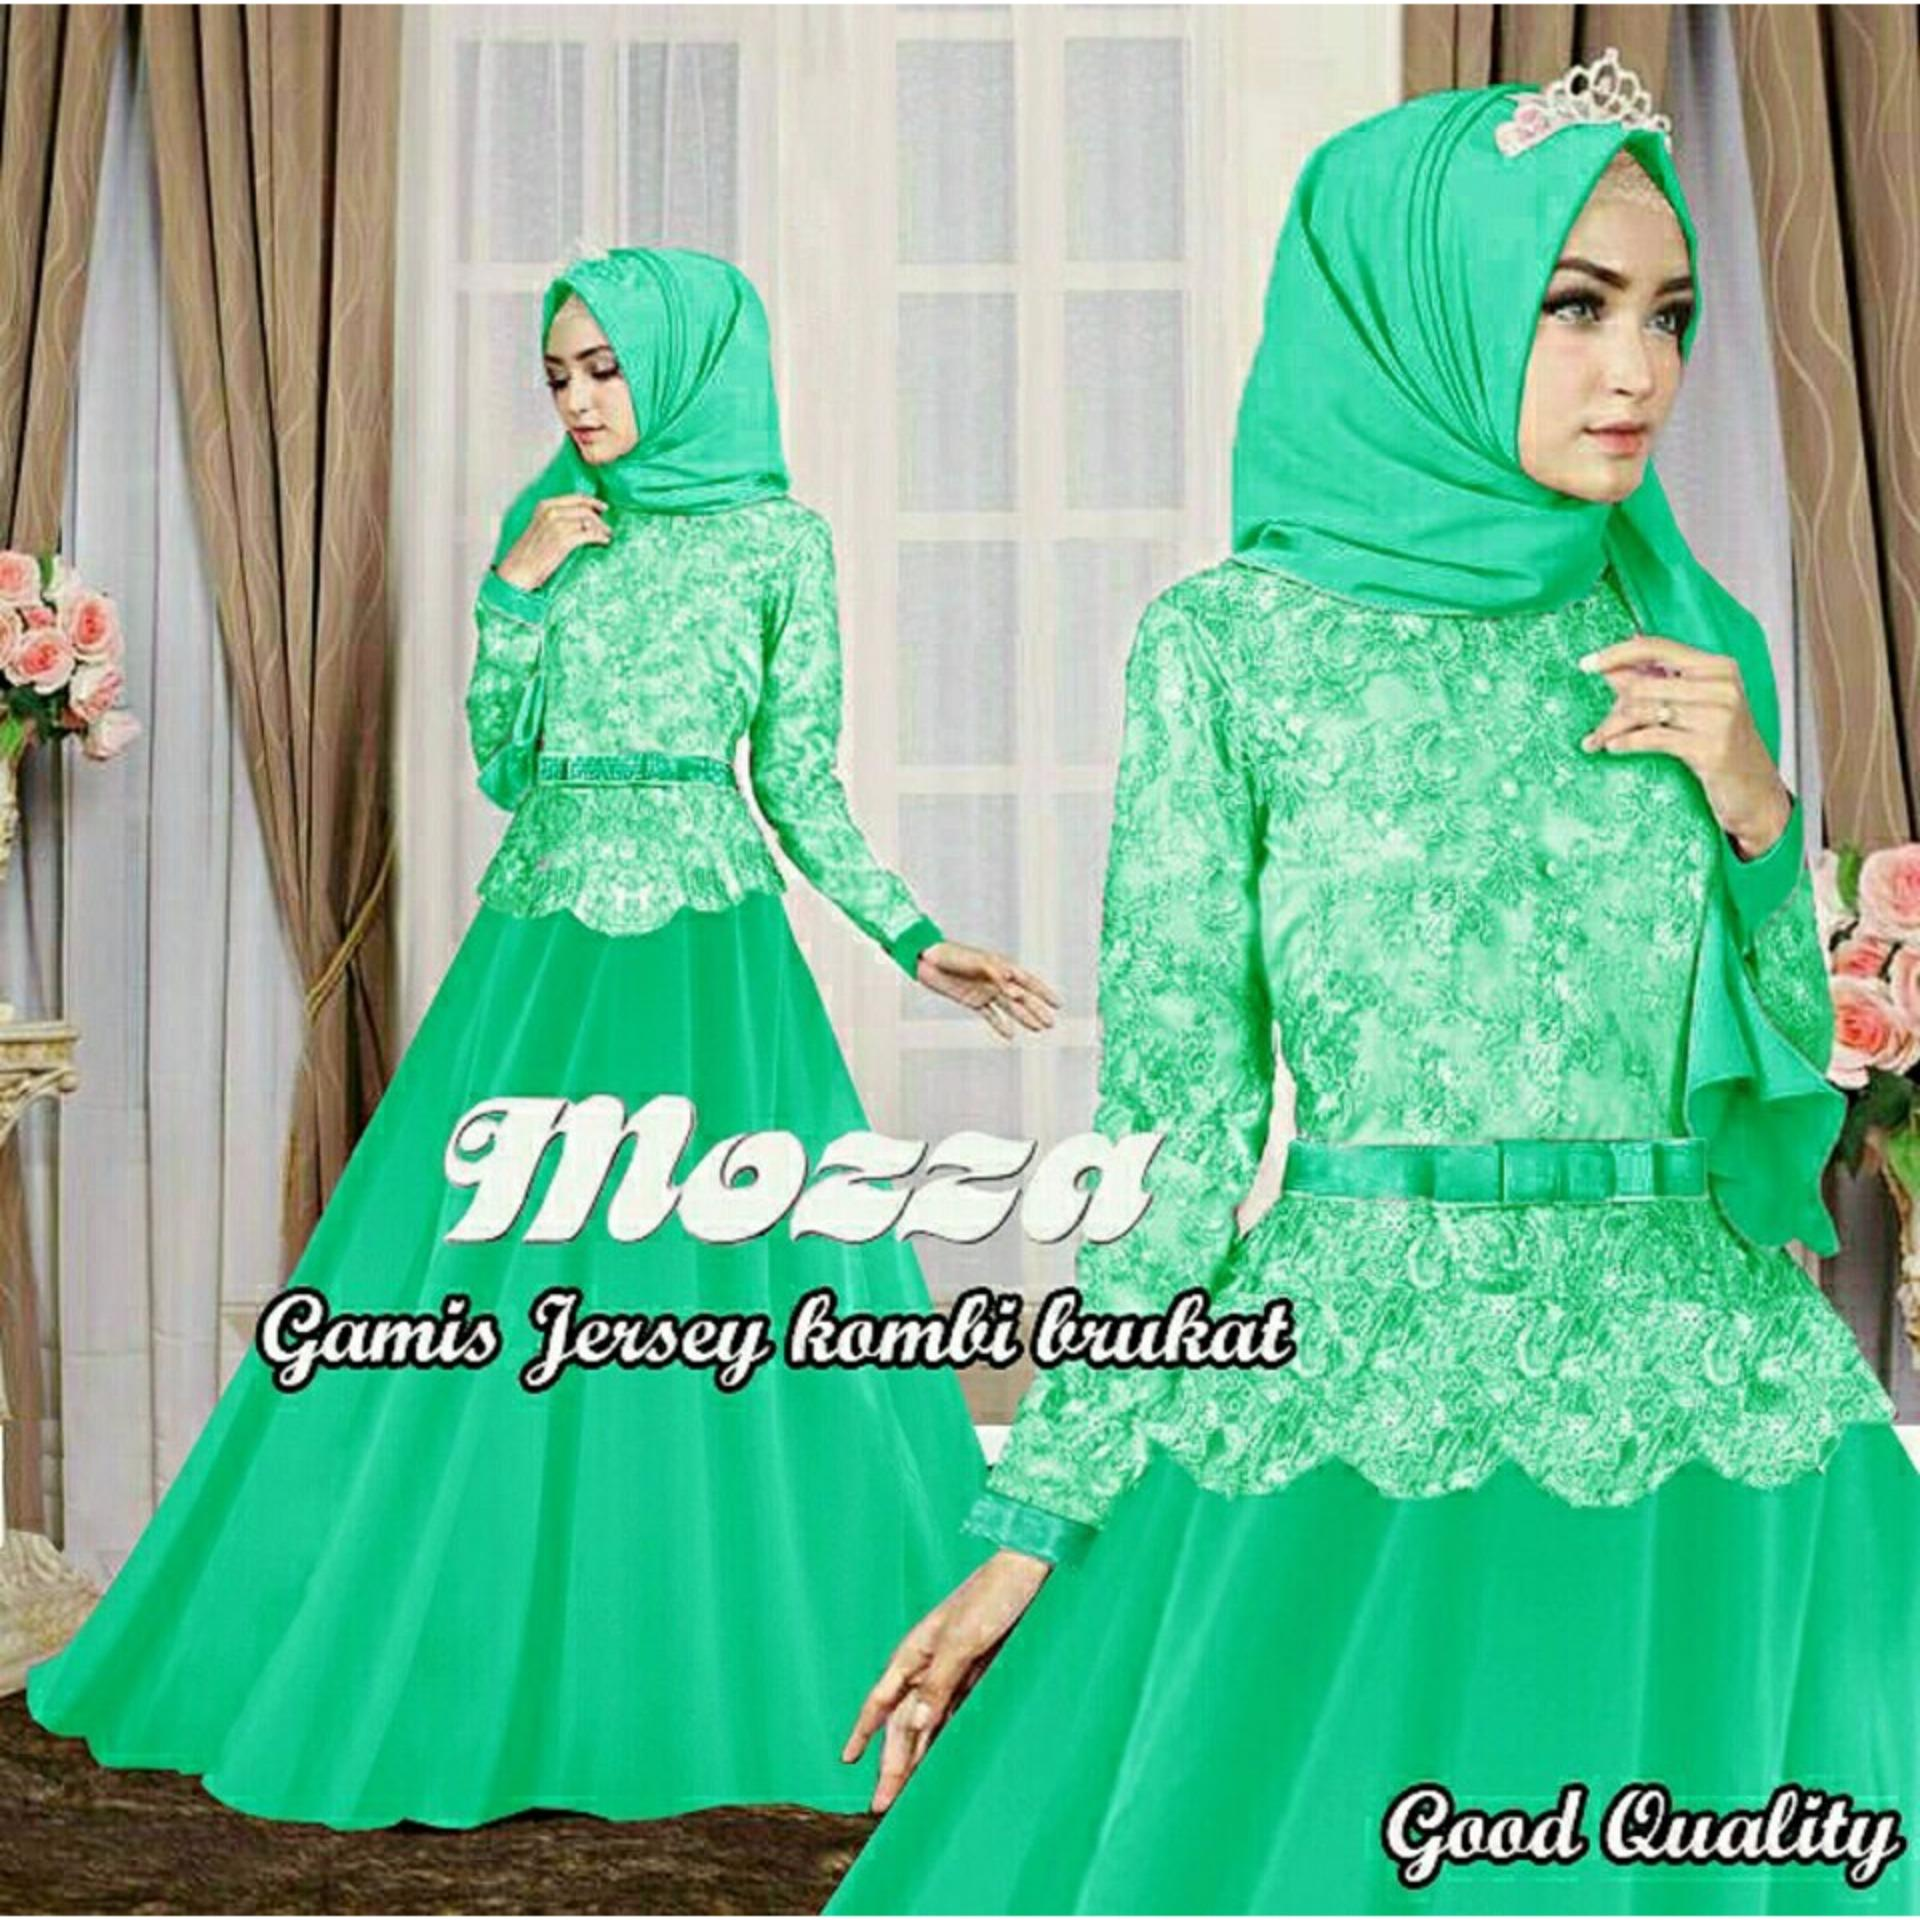 legiONshop- busana muslim muslim wear gamis hijab dress maxi 2 in 1 MOZZA BRUKAT green